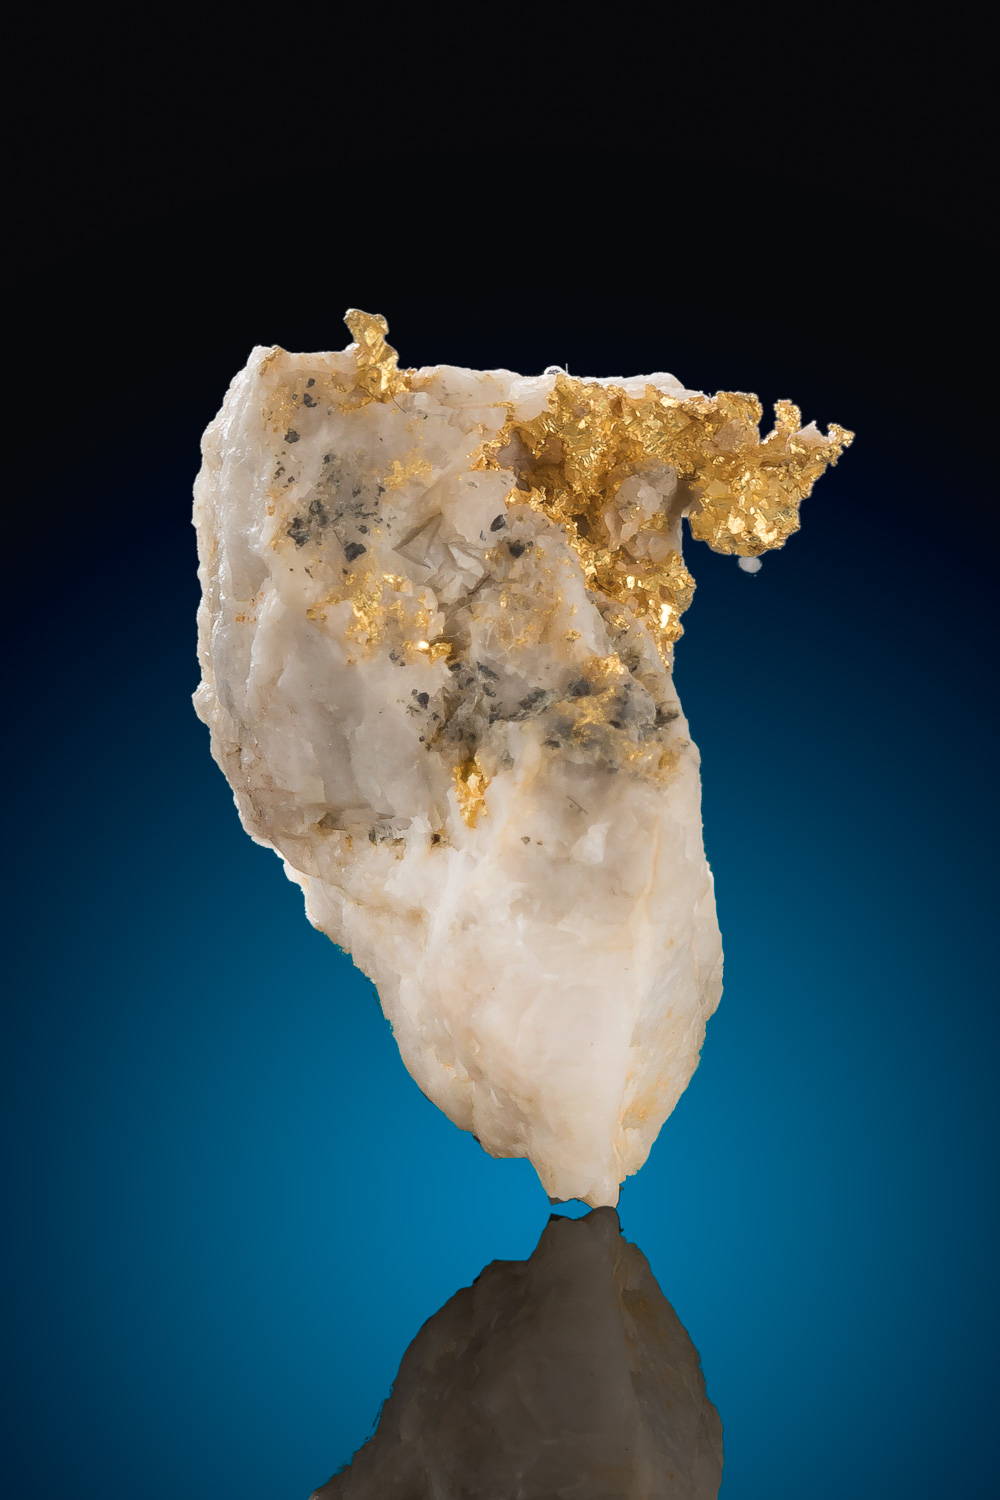 Imbedded and Cavernous Crystalline Gold in Quartz